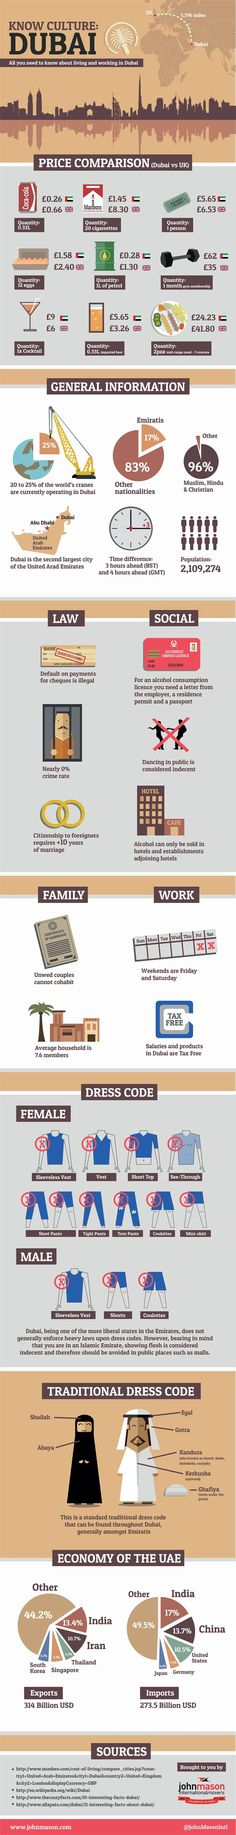 A move to Dubai on the horizon? Know your new culture with this infographic!  http://www.johnmason.com/moving-guide/destinations1/uae/know-culture-dubai/